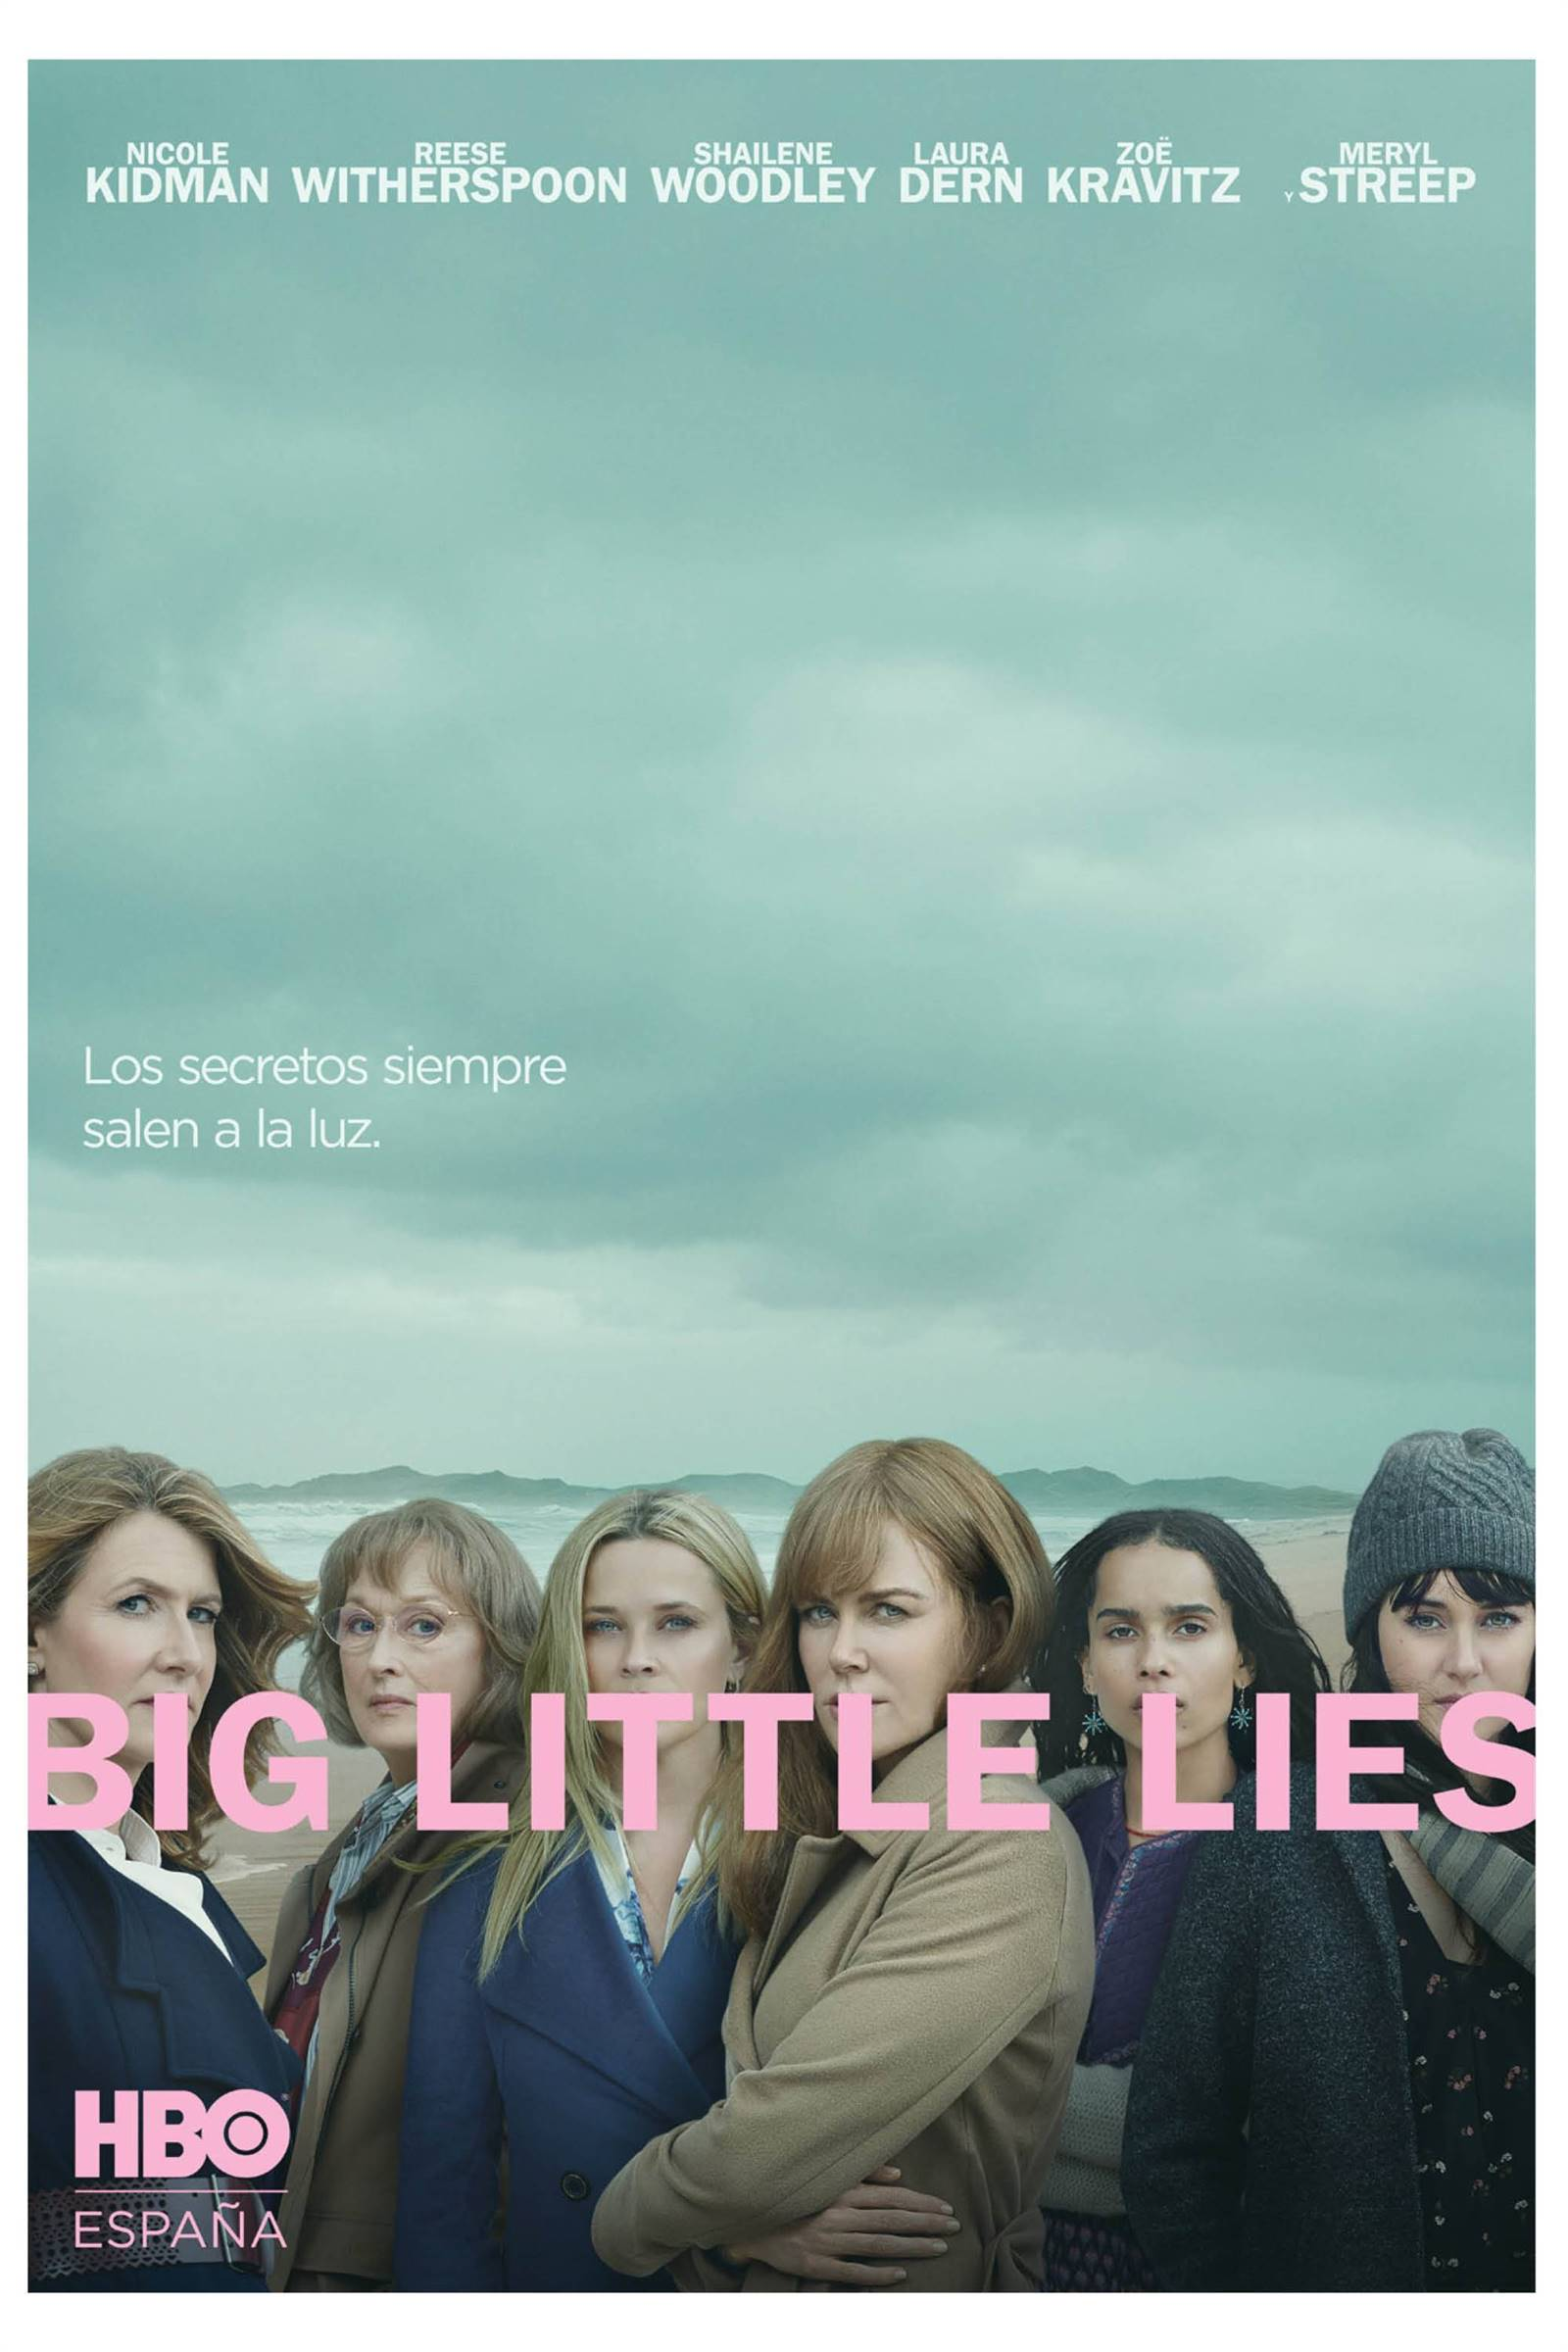 big little lies mejores series netflix hbo movistar amazon